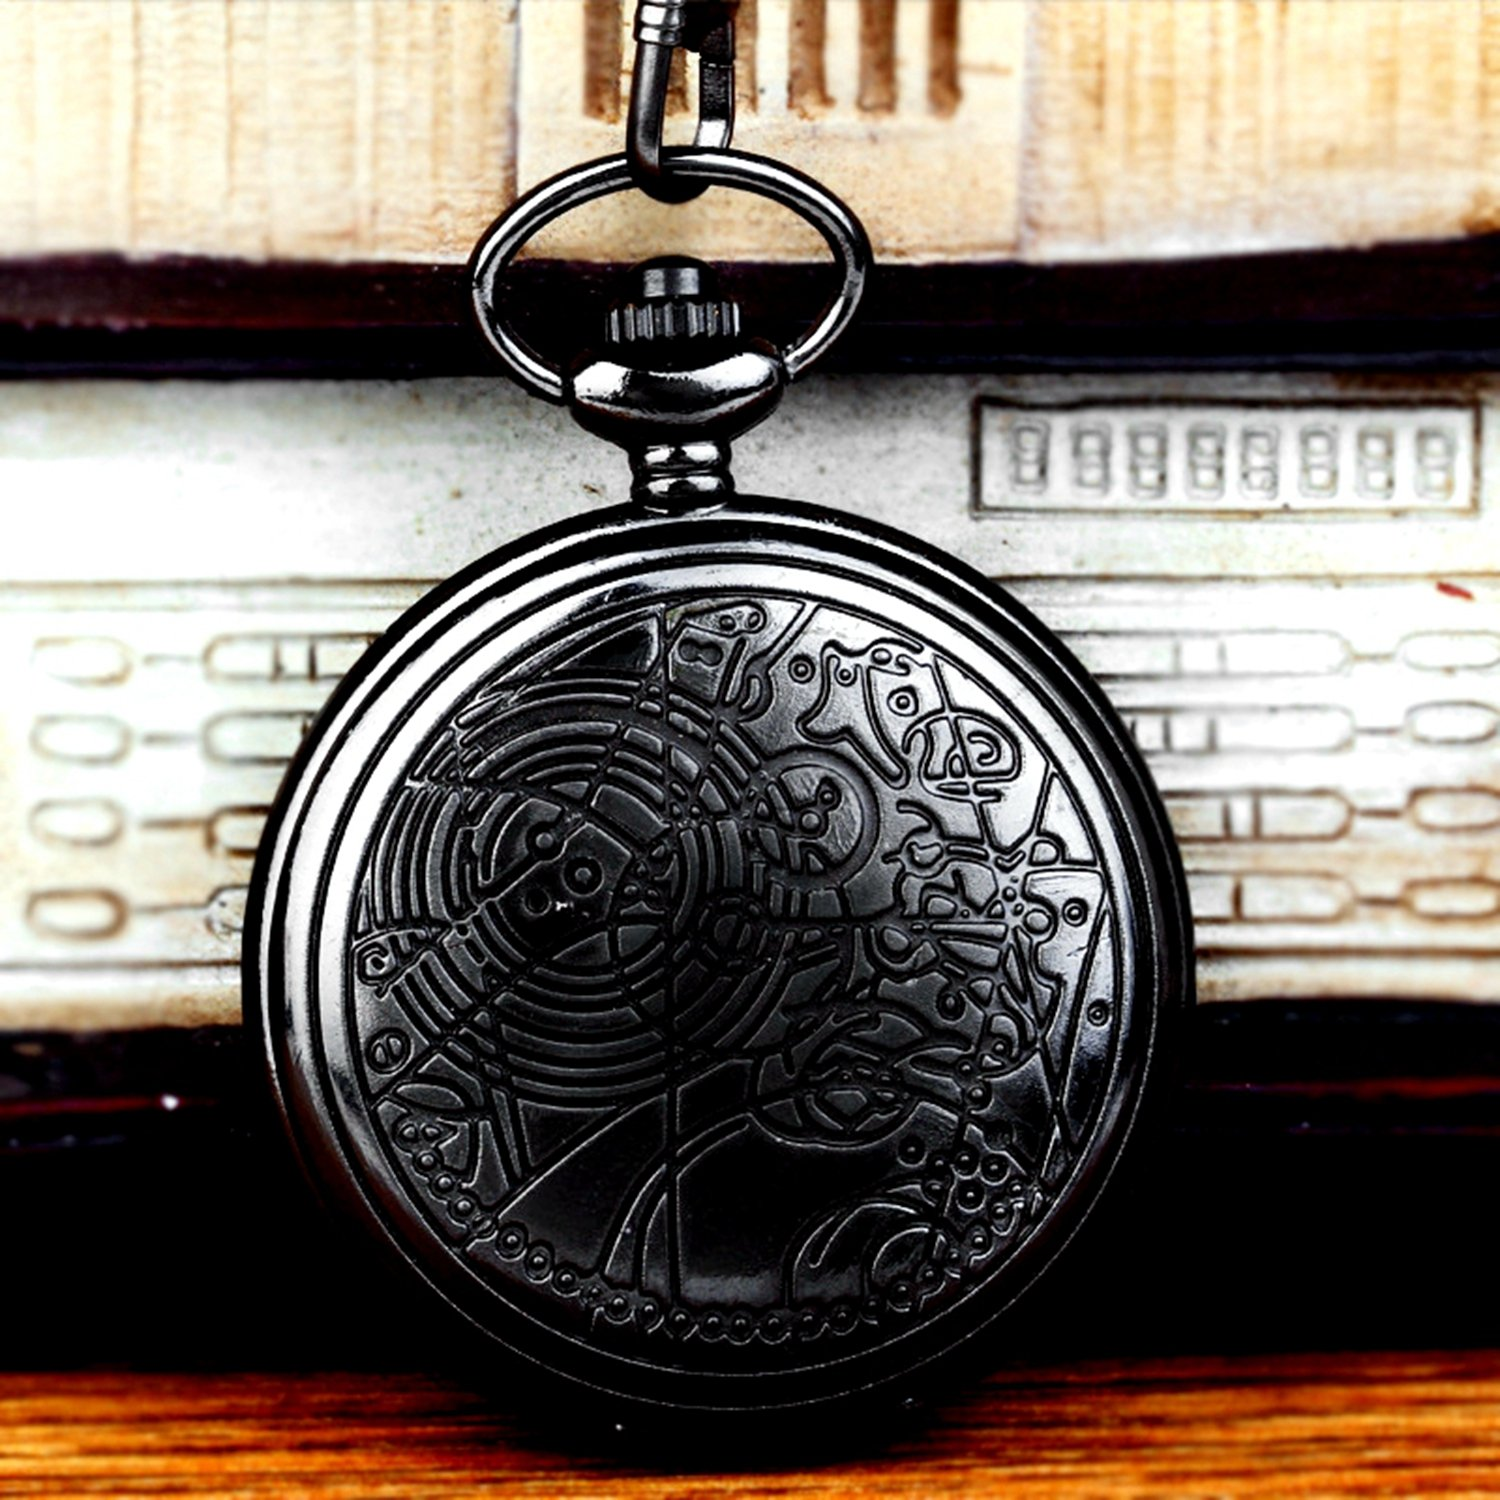 Vintage Black Doctor Who Retro Dr. Who Quartz Pocket Watch with Chain & Gift Box by New Brand Mall (Image #4)